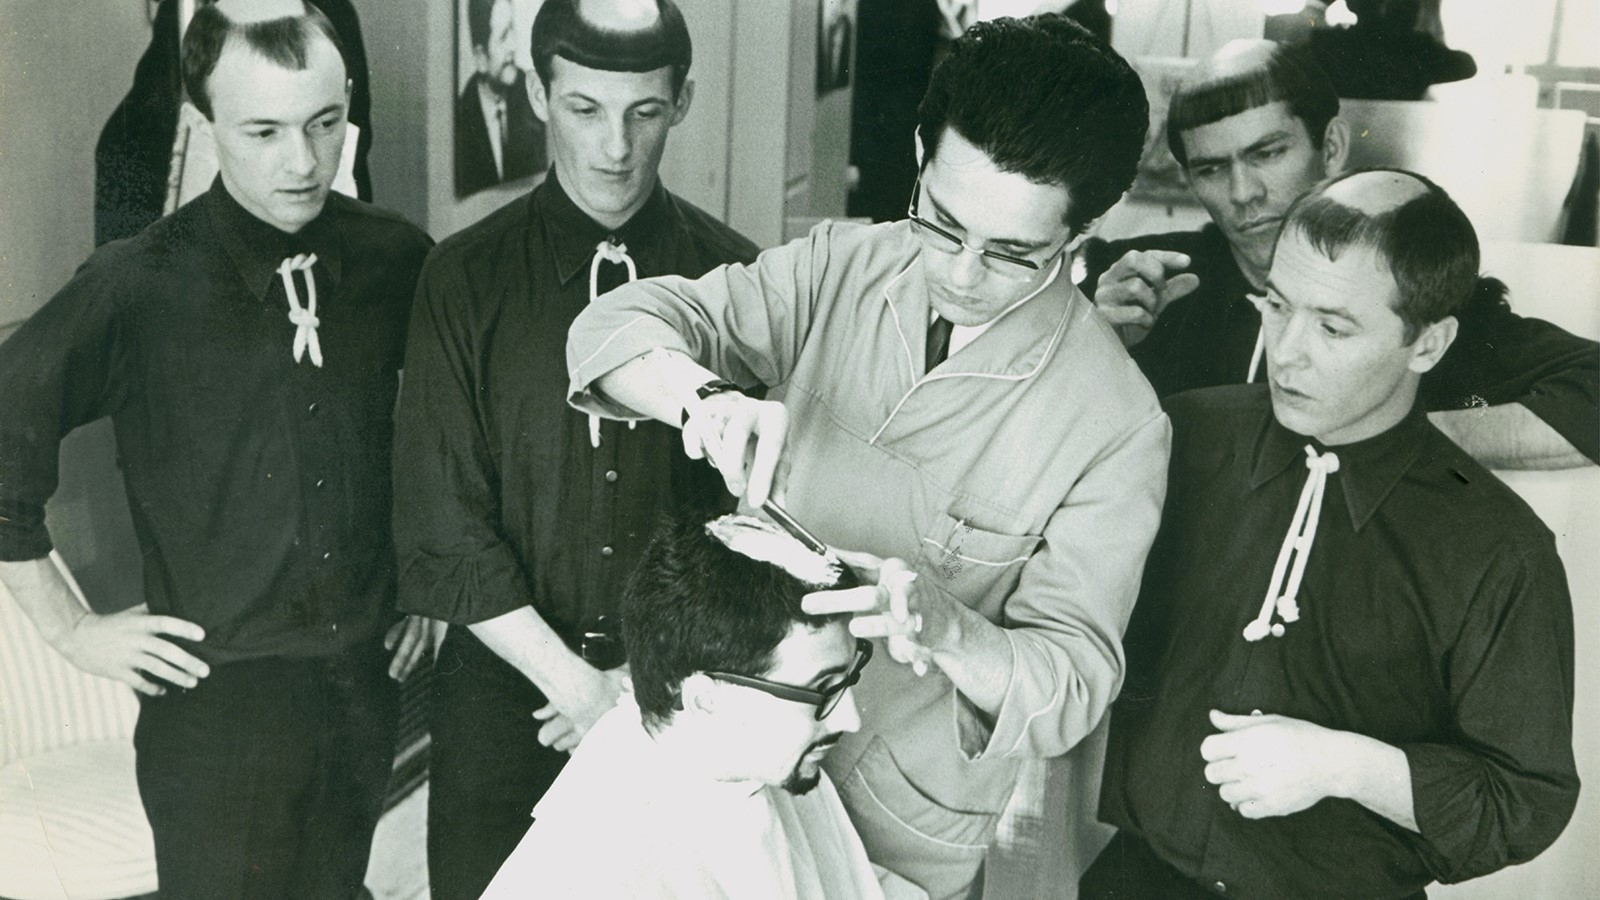 Larry under the barber's shears, 1966